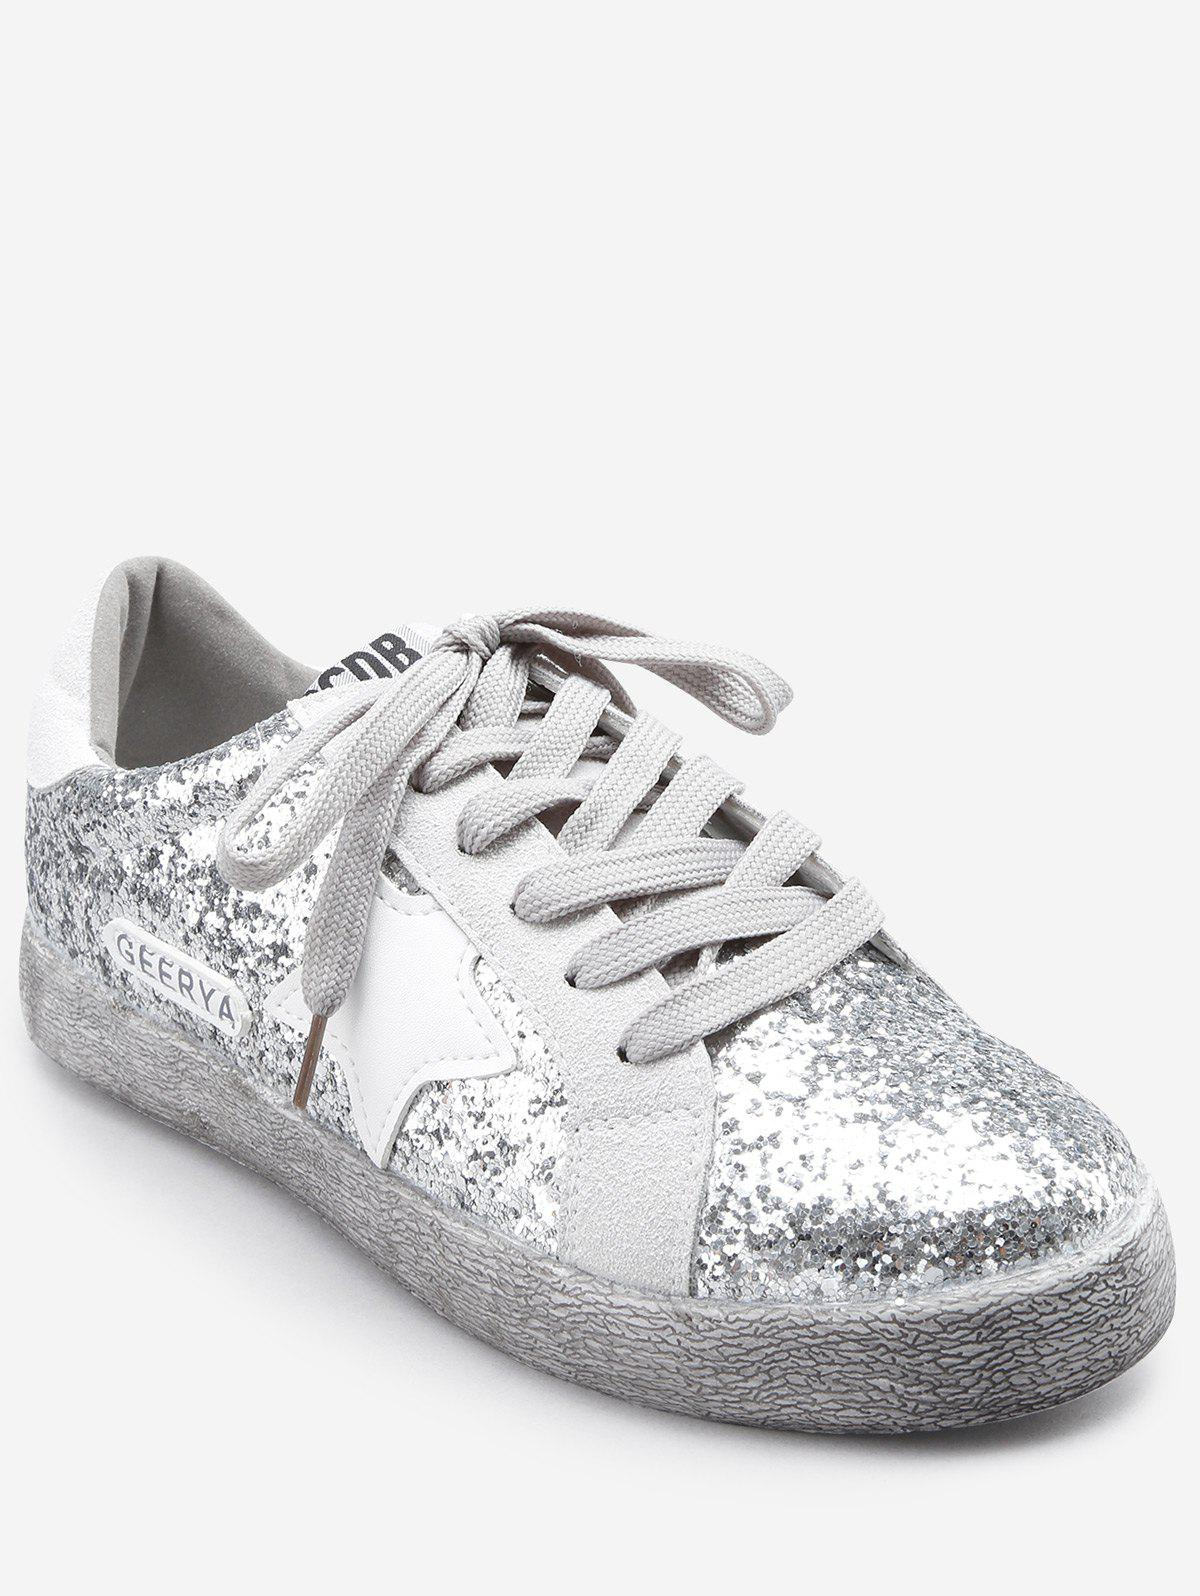 Best Dazzling Sequins Pentagram Lace Up Sneakers